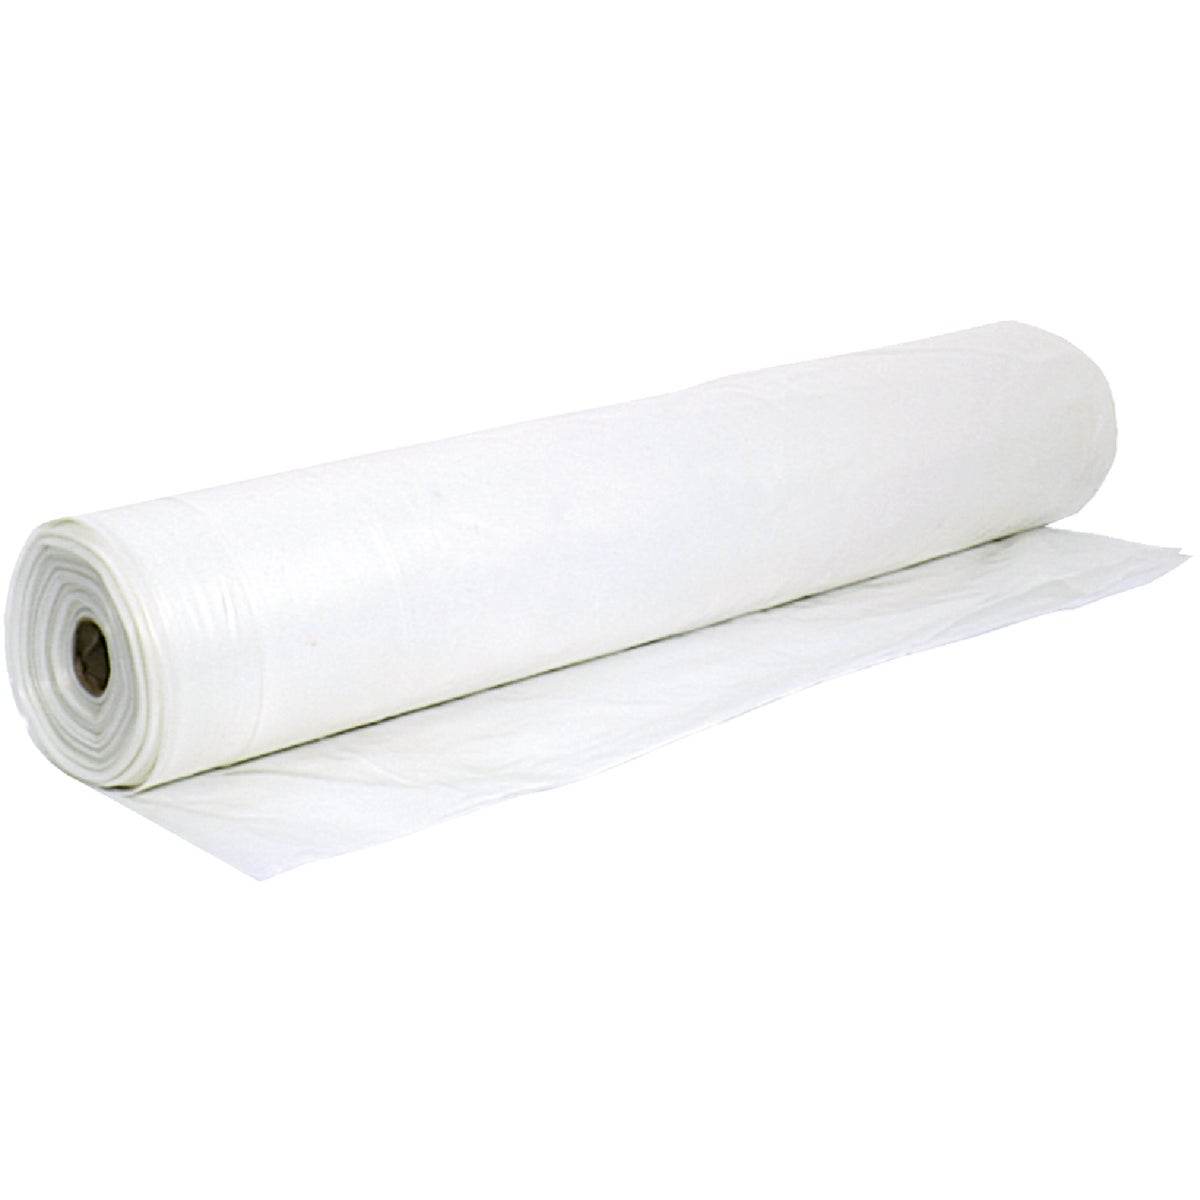 10'X100' 6M WHT POLY FLM - 825309 by Berry Plastics